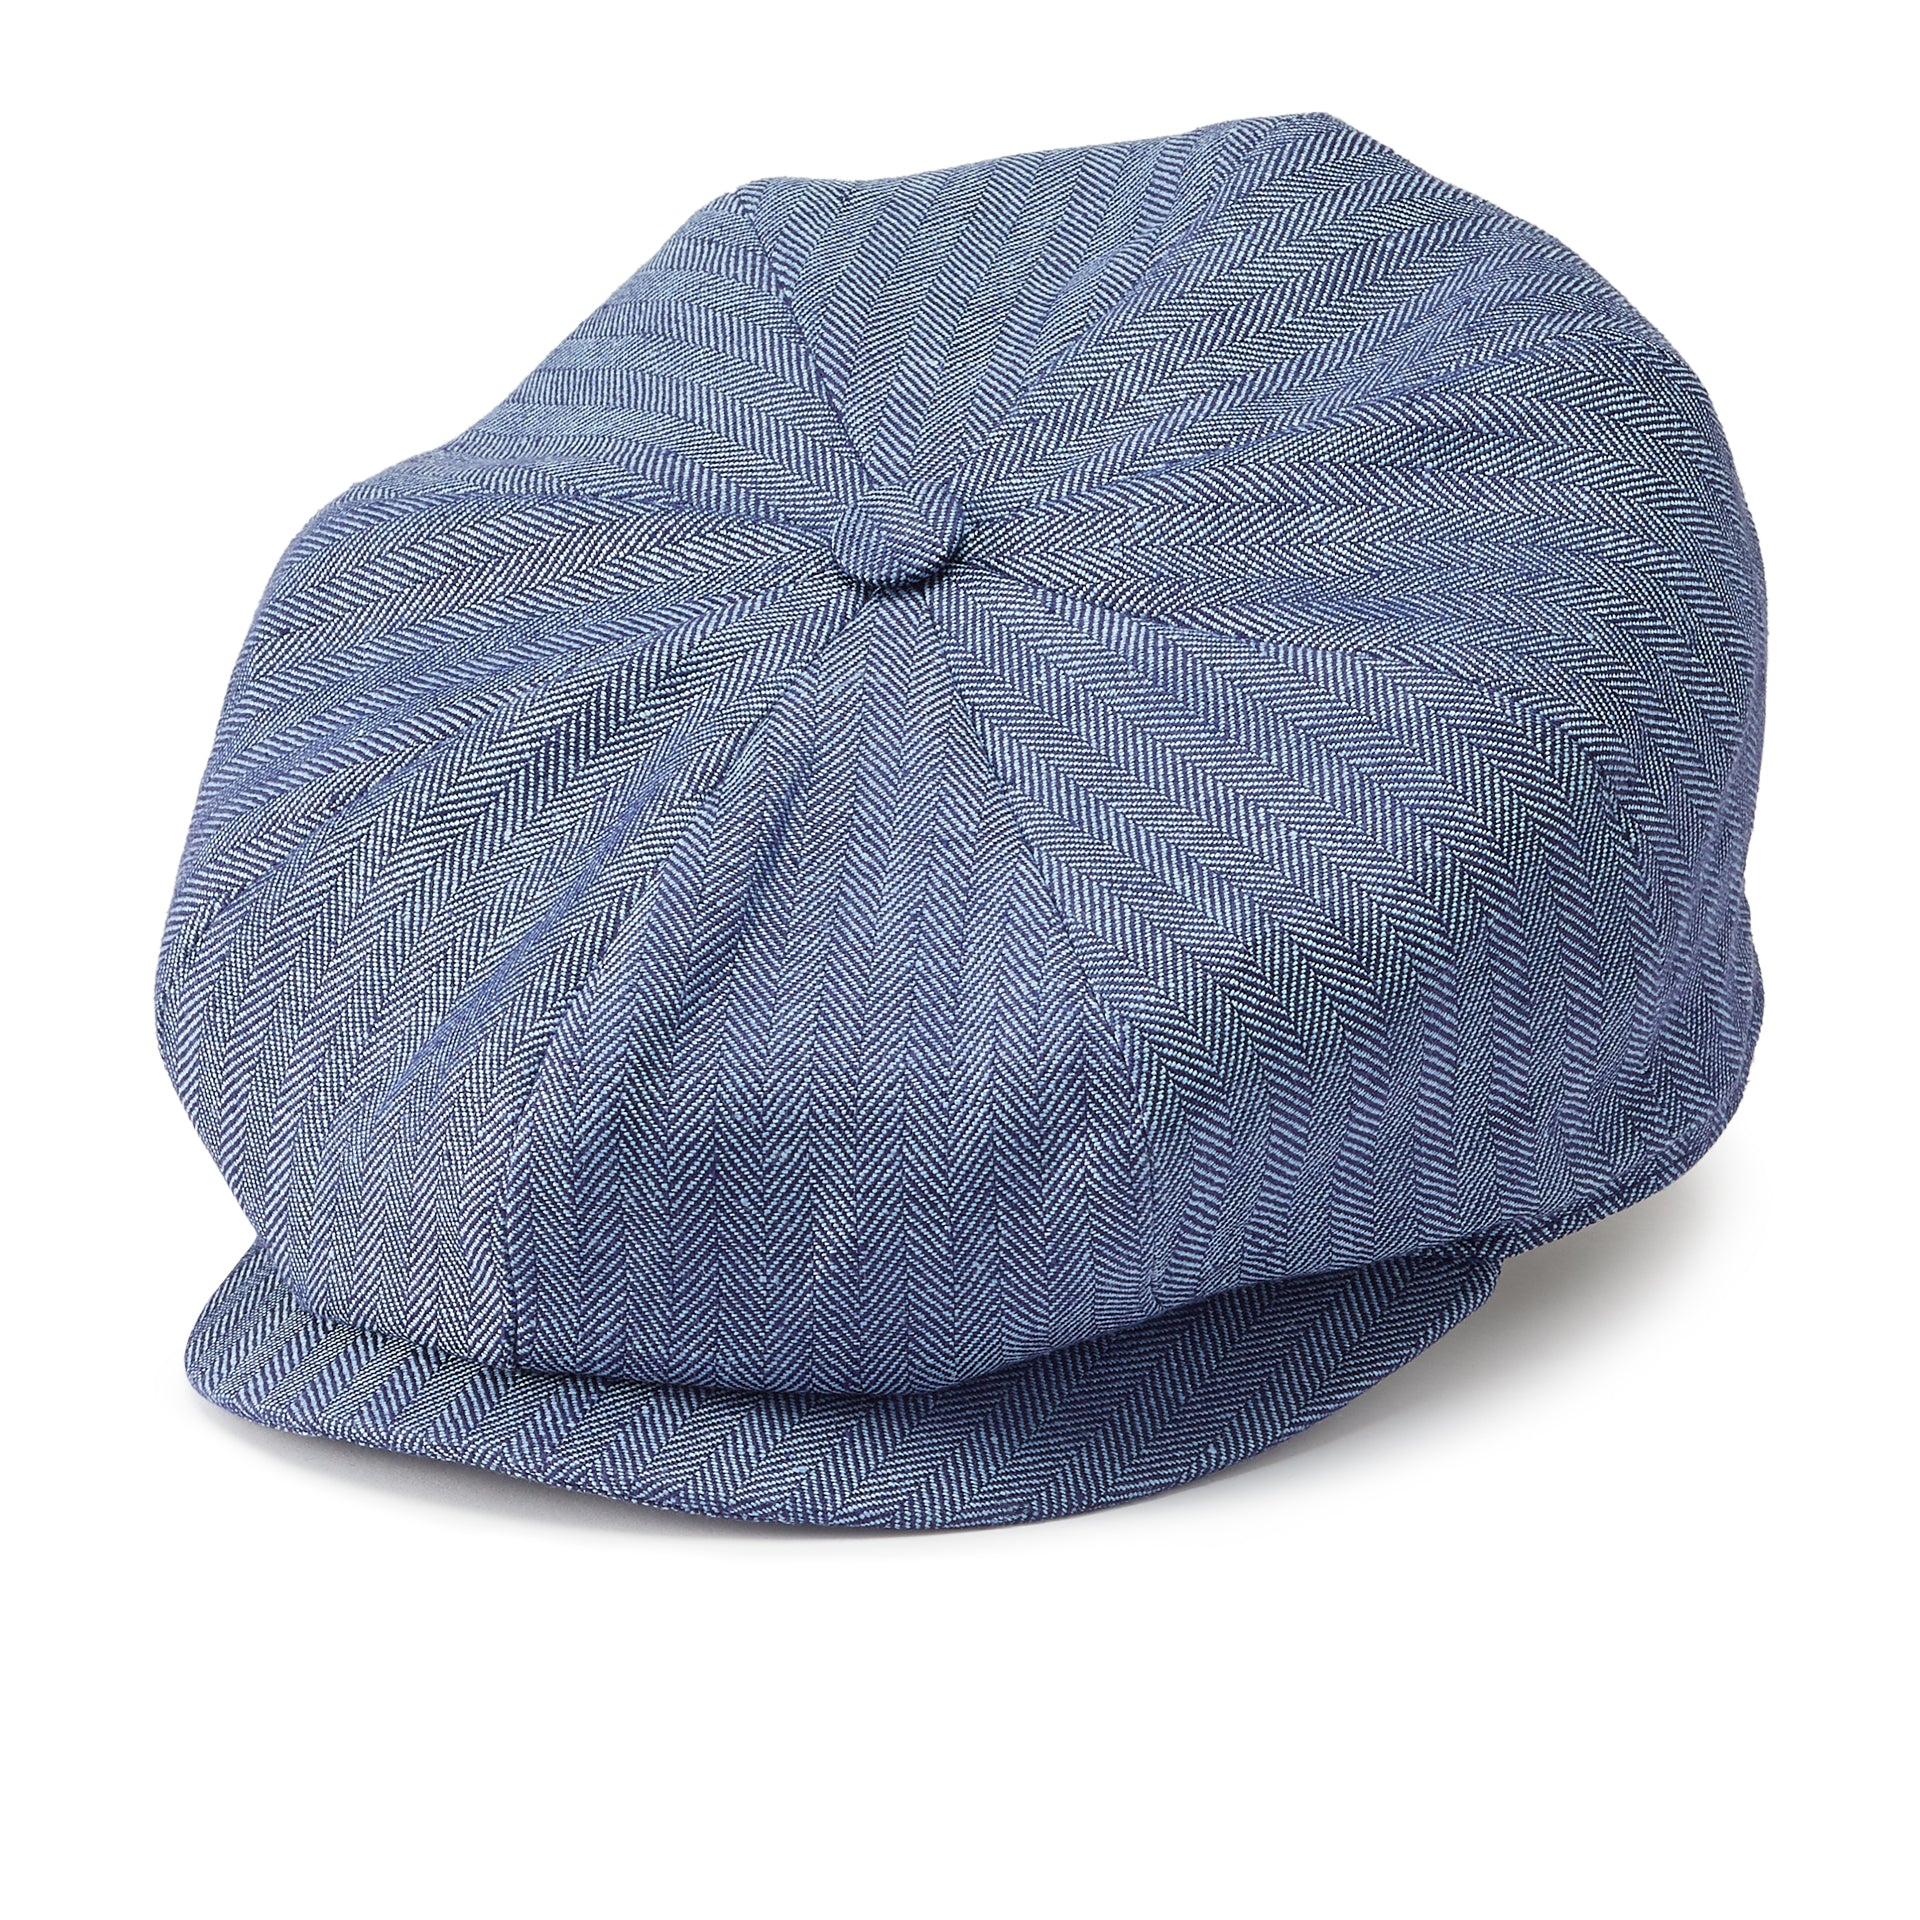 ATRANI Linen Tremelo Cap -  - Lock & Co. Hatters London UK